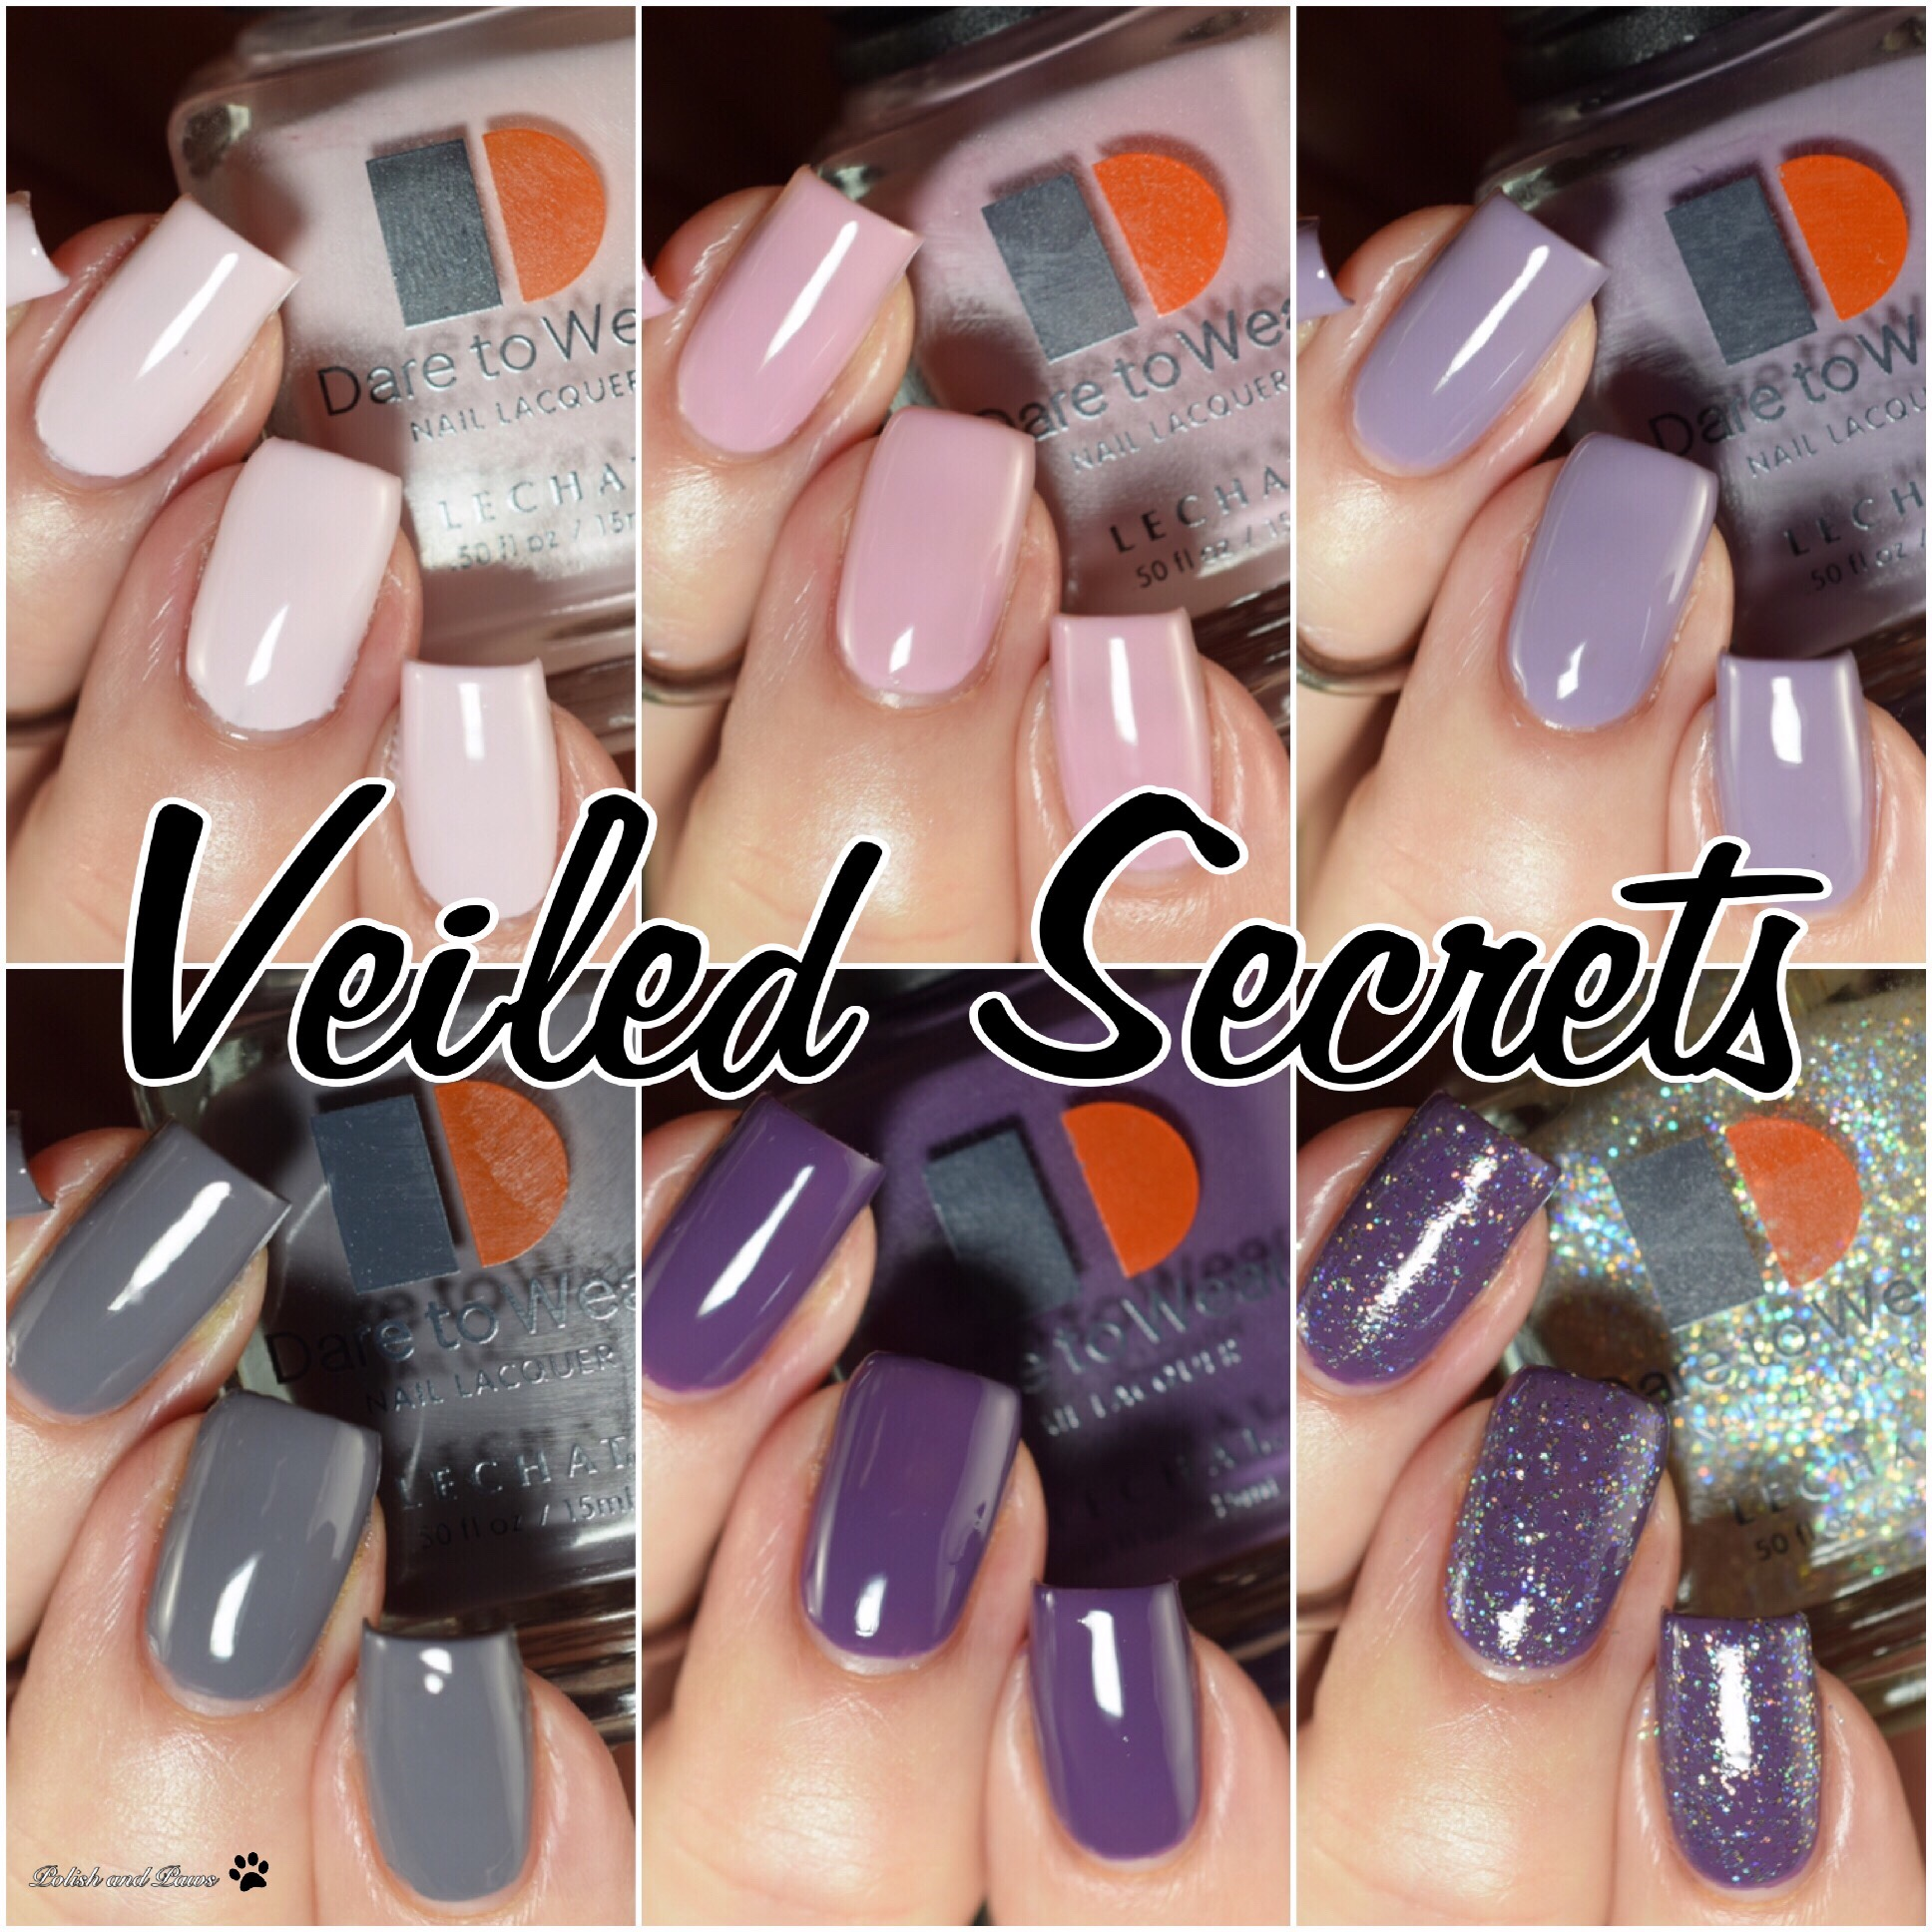 Le Chat Dare to Wear Veiled Secrets ~ Winter